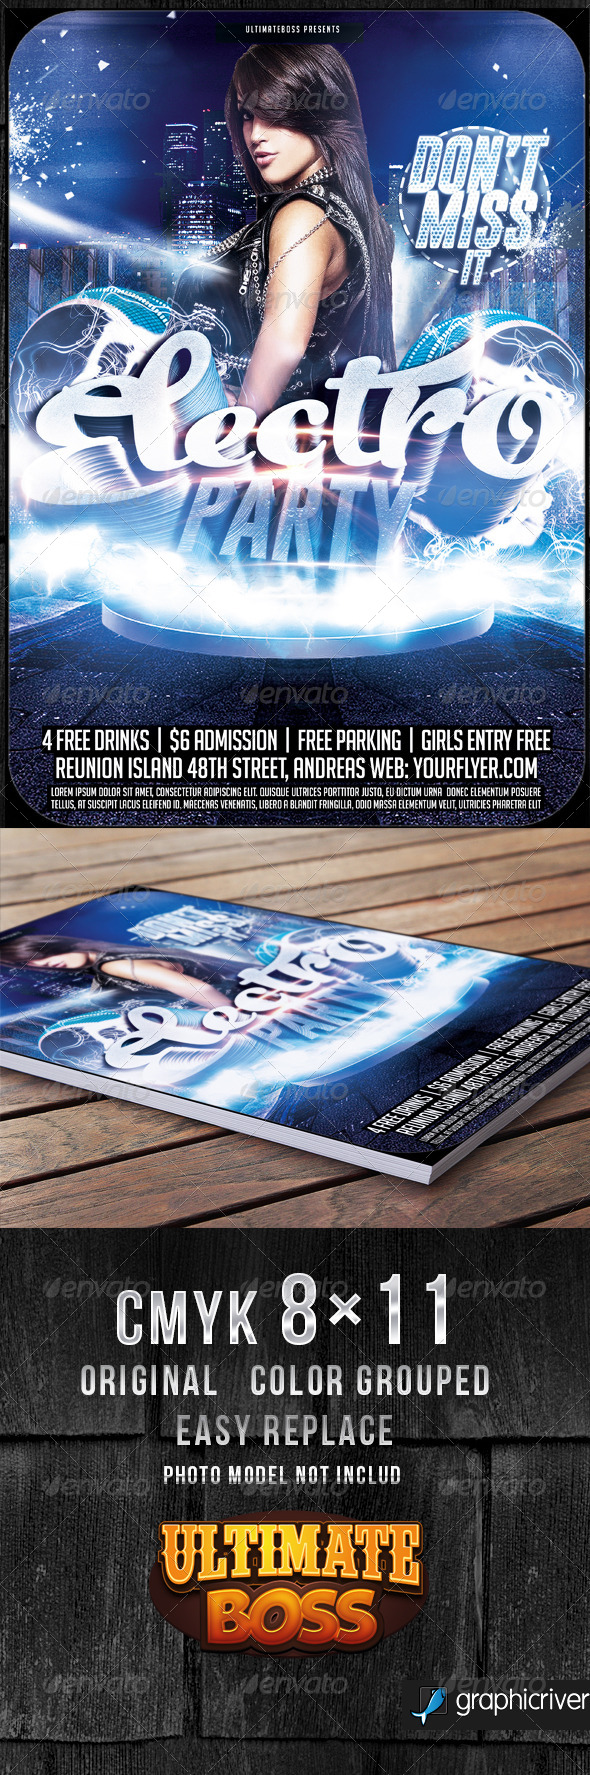 GraphicRiver Electro Night Flyer Template 8740564